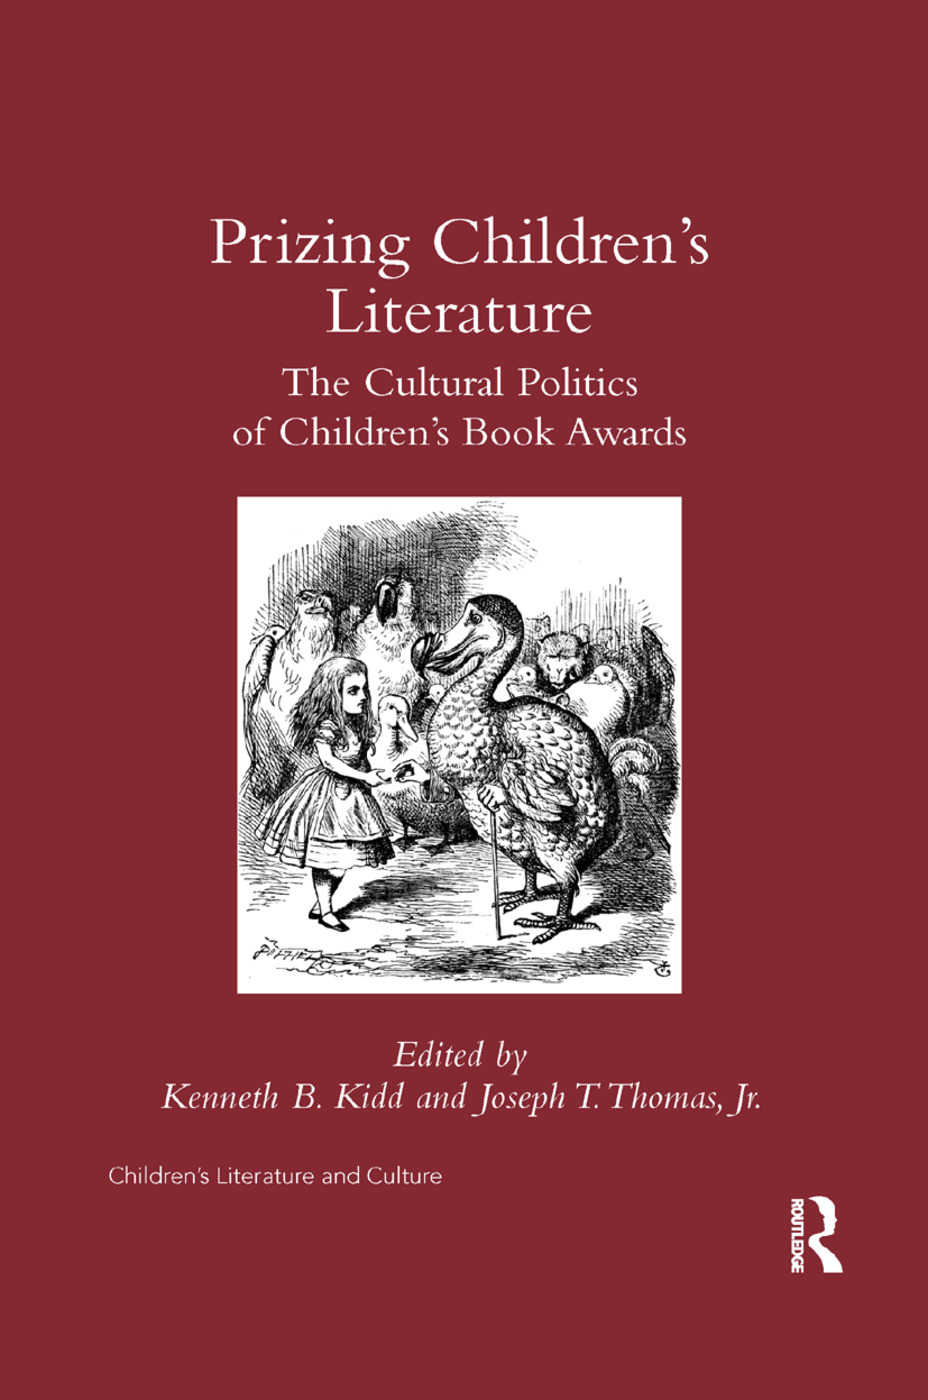 Prizing Children's Literature: The Cultural Politics of Children's Book Awards book cover